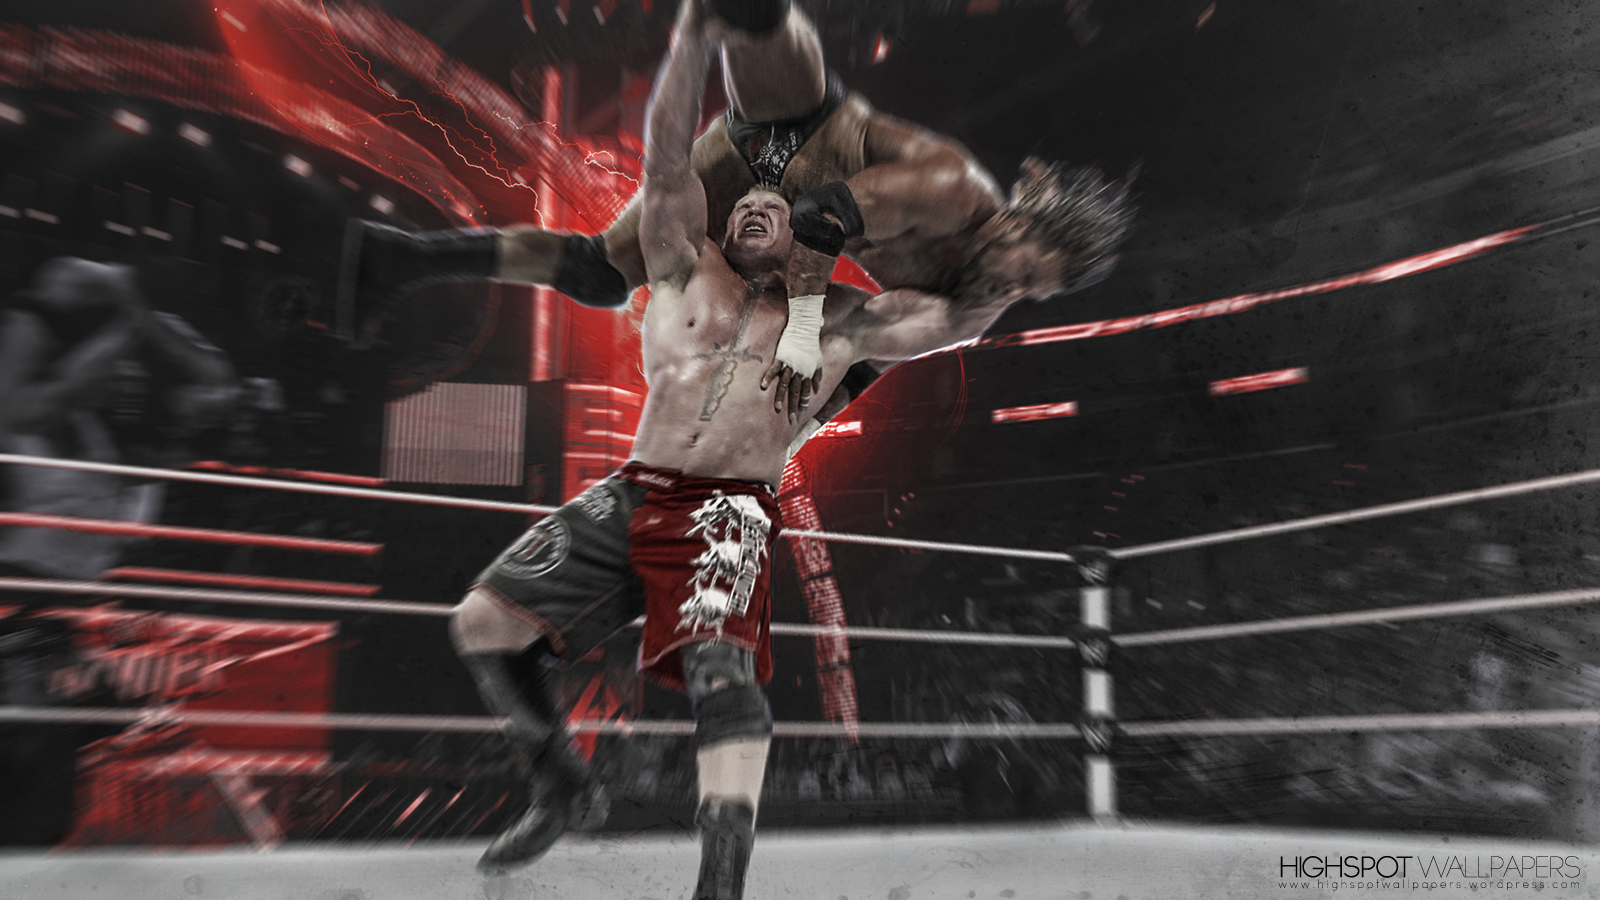 Brock Lesnar Action Series Wallpaper | Highspot Wrestling ...